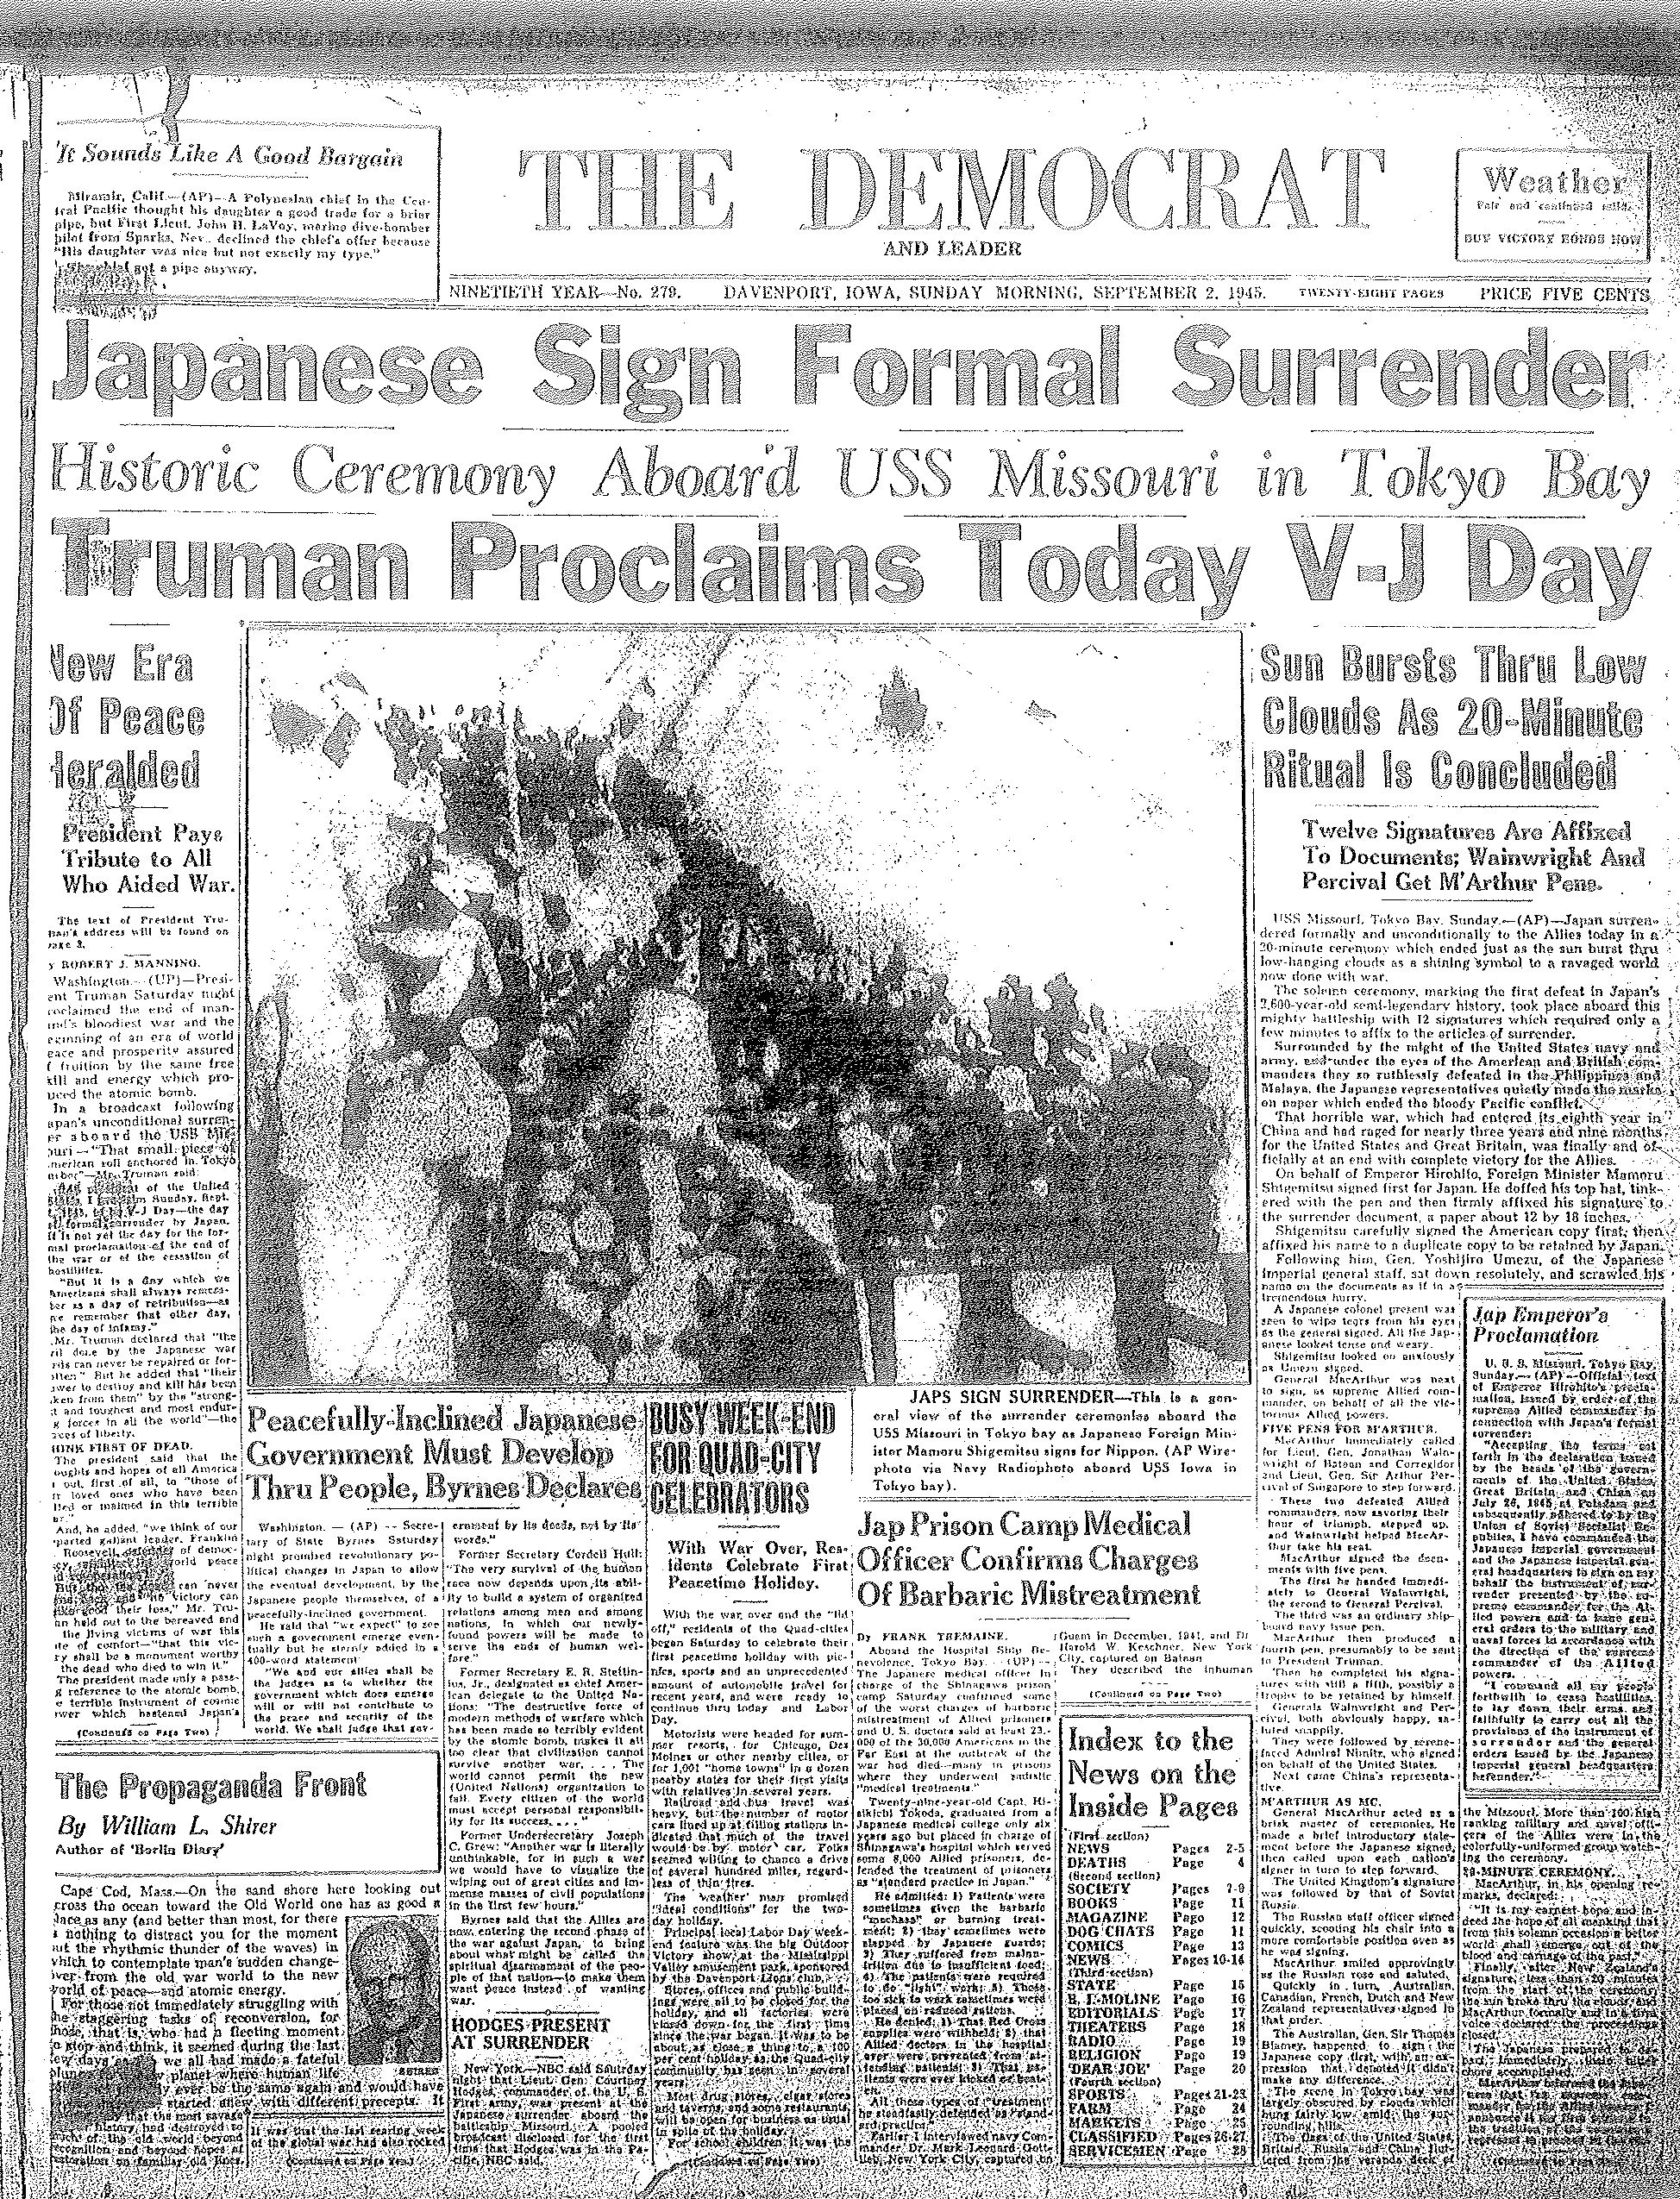 The Japanese surrender in World War II.